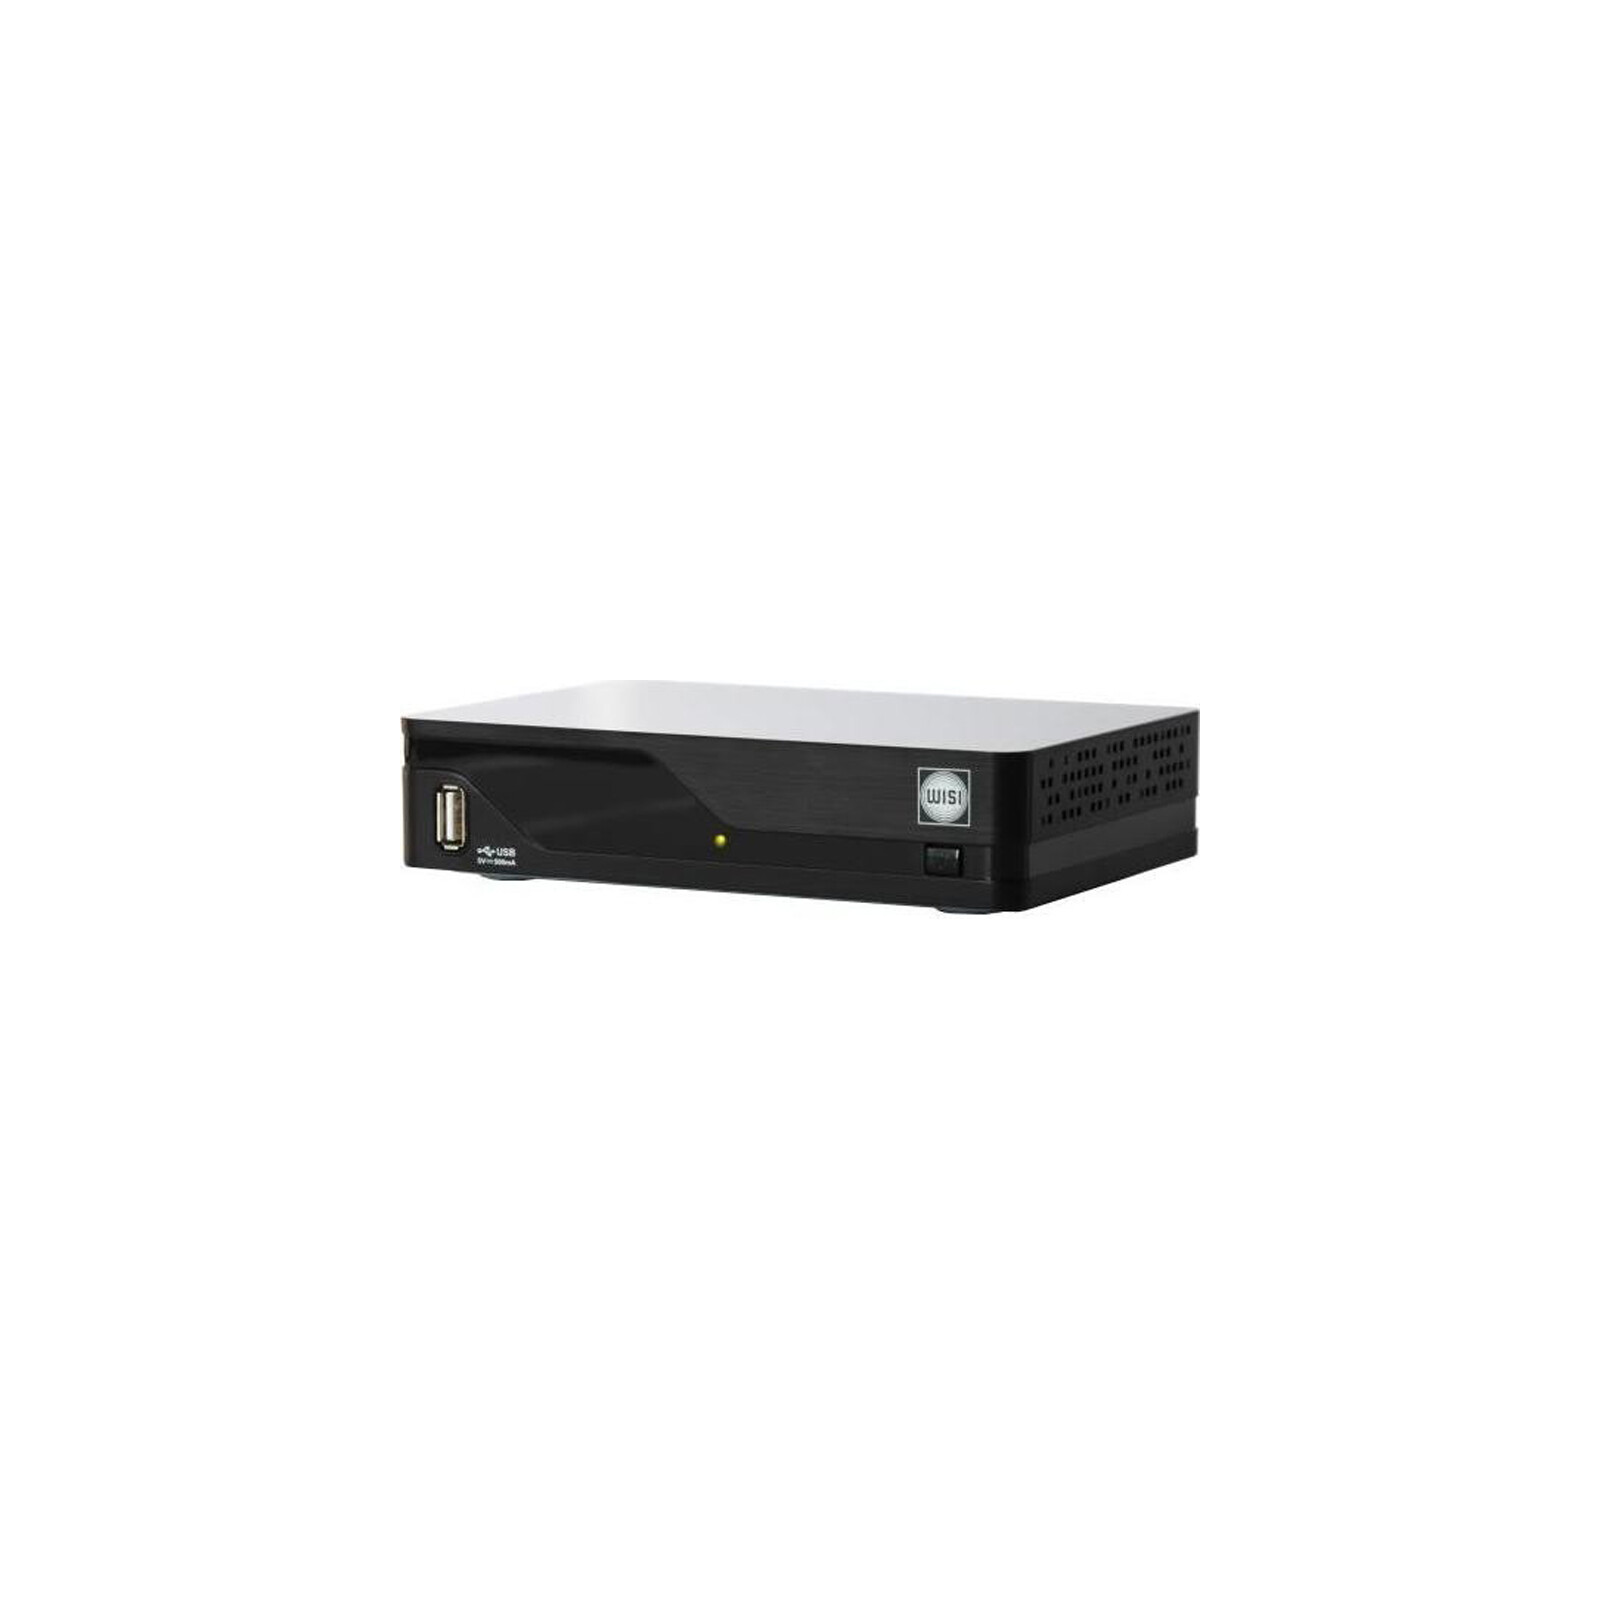 Wisi OR 710 CL Cardless HDTV Sat Reiceiver